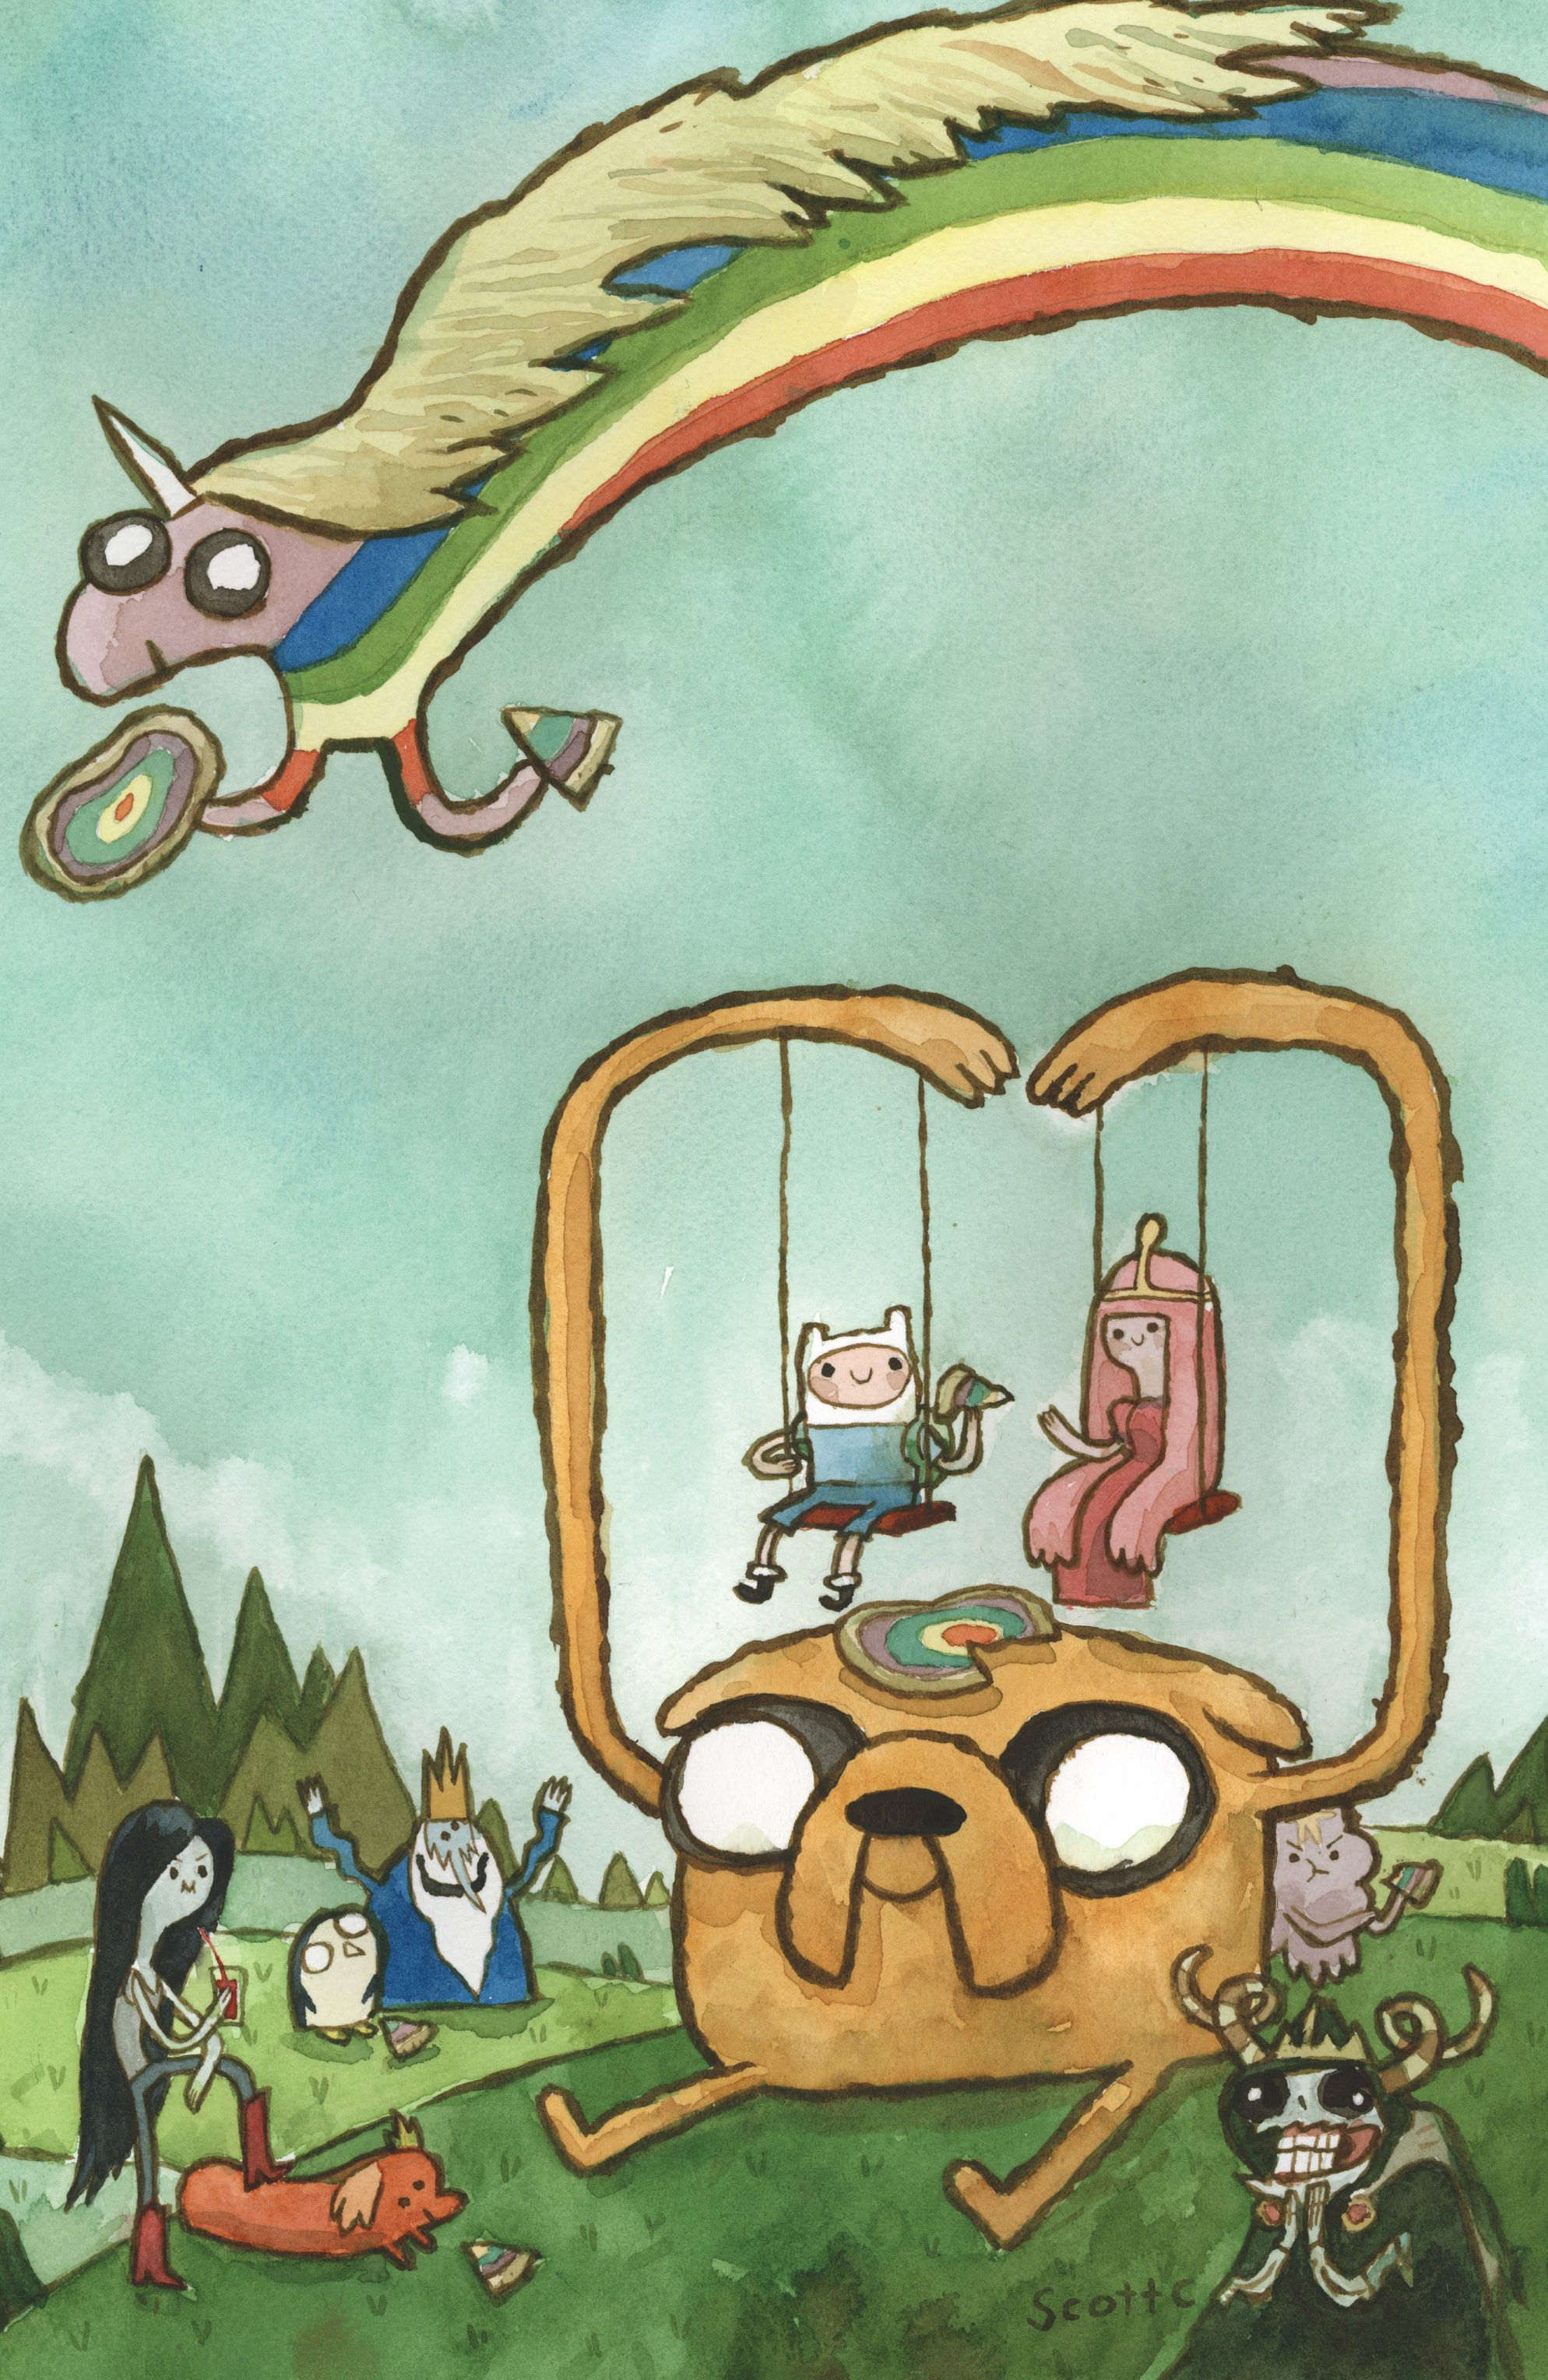 Read online Adventure Time comic -  Issue #4 - 3